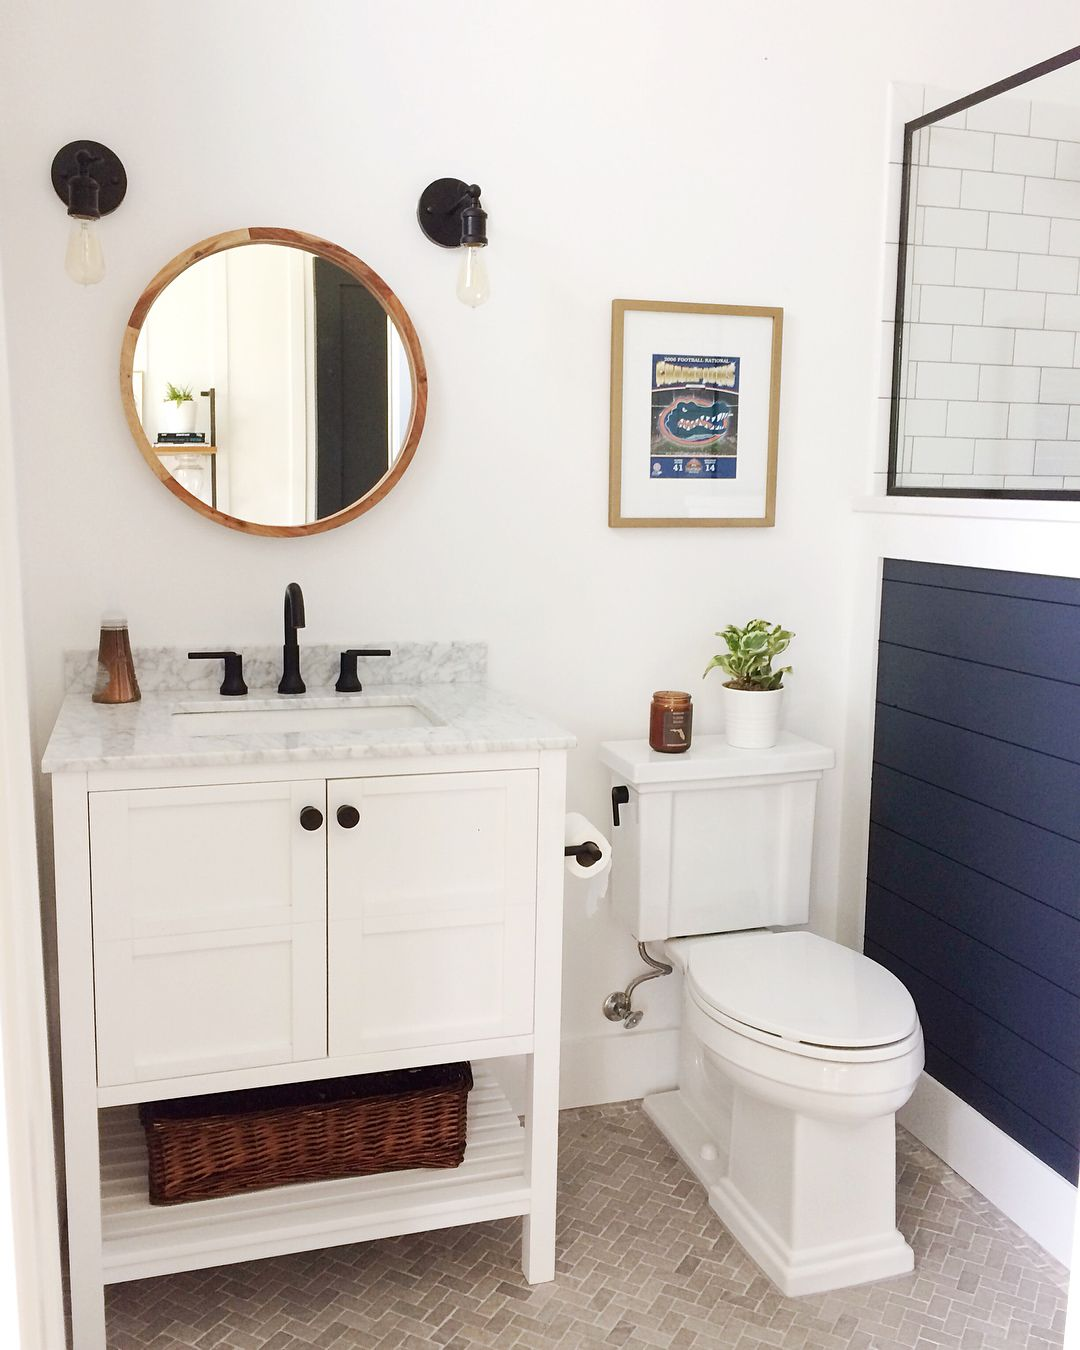 benjamin moore hale navy shiplap wall. modern farmhouse bathroom. #modernfarmhouse #